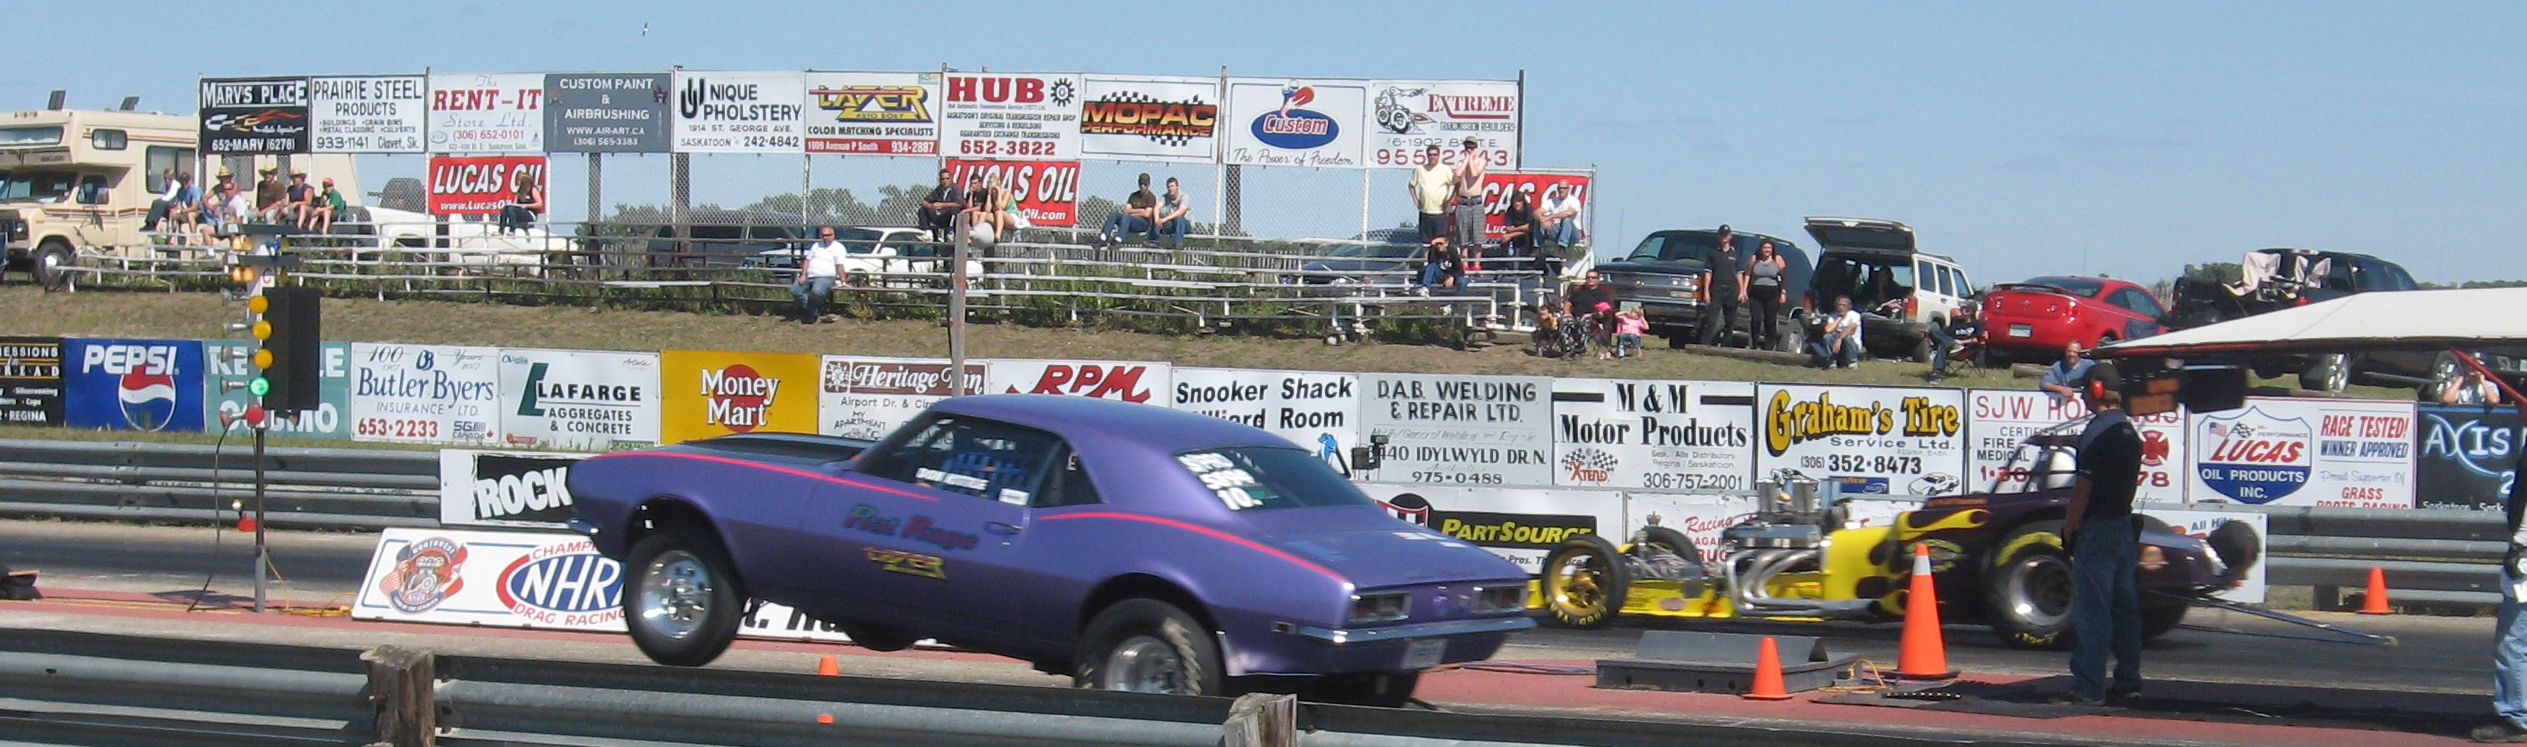 Camaro performing a wheelie during drag racing.